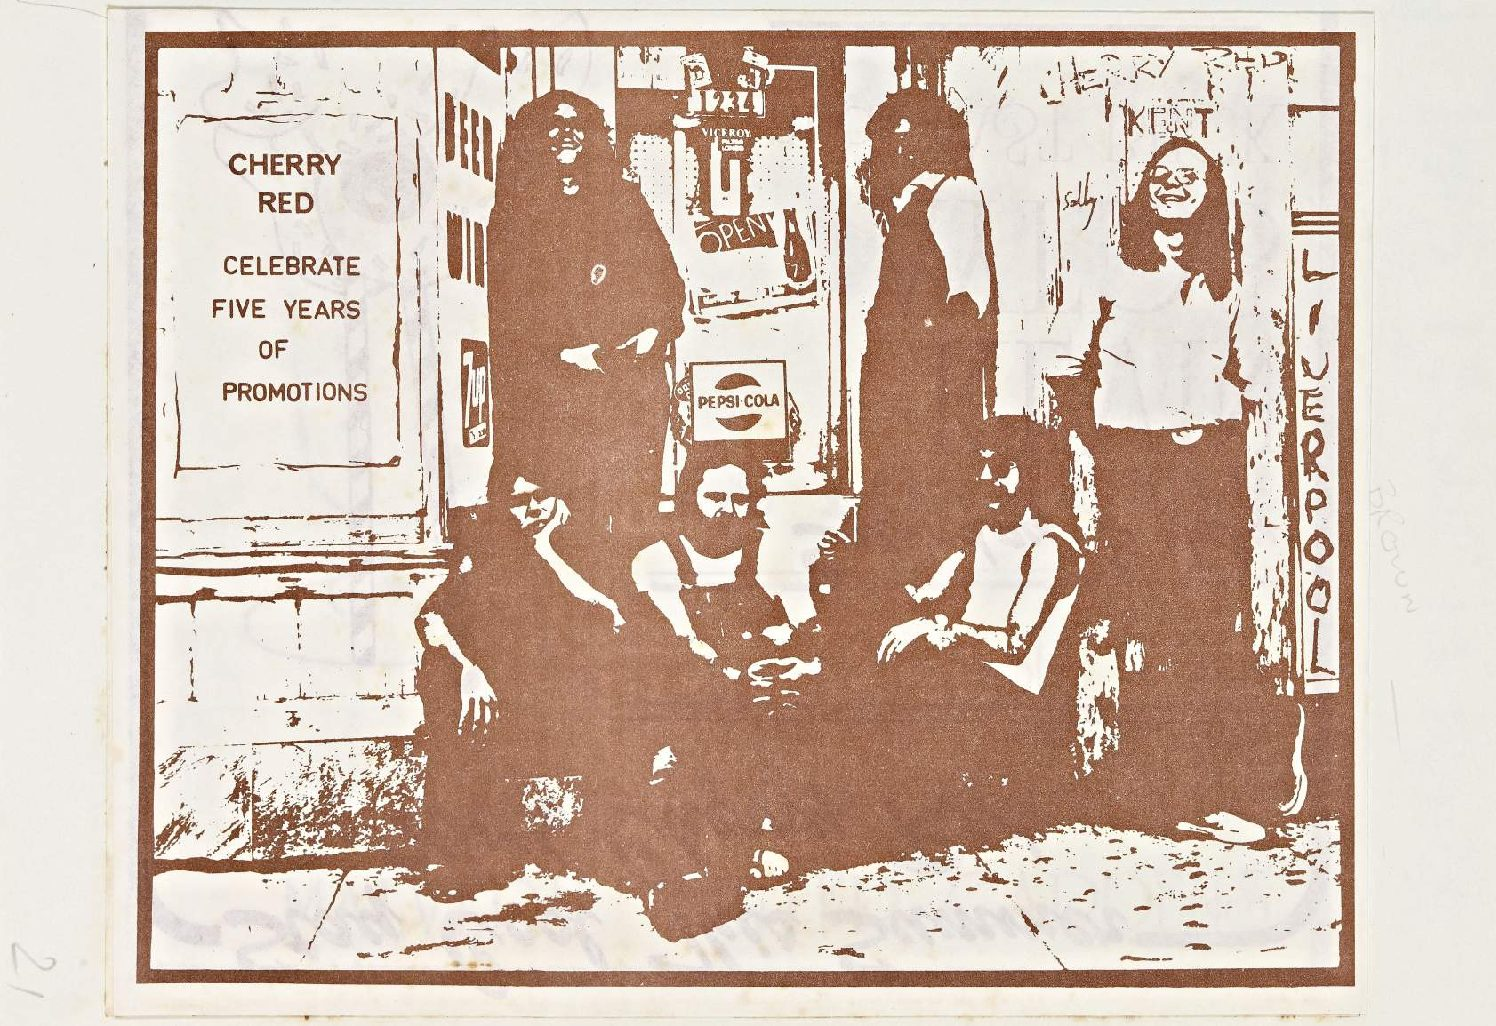 Cherry Red 'fanzine', including advert for Kevin Ayers and Heavy Metal Kids at Malvern Winter Gardens, July 1976